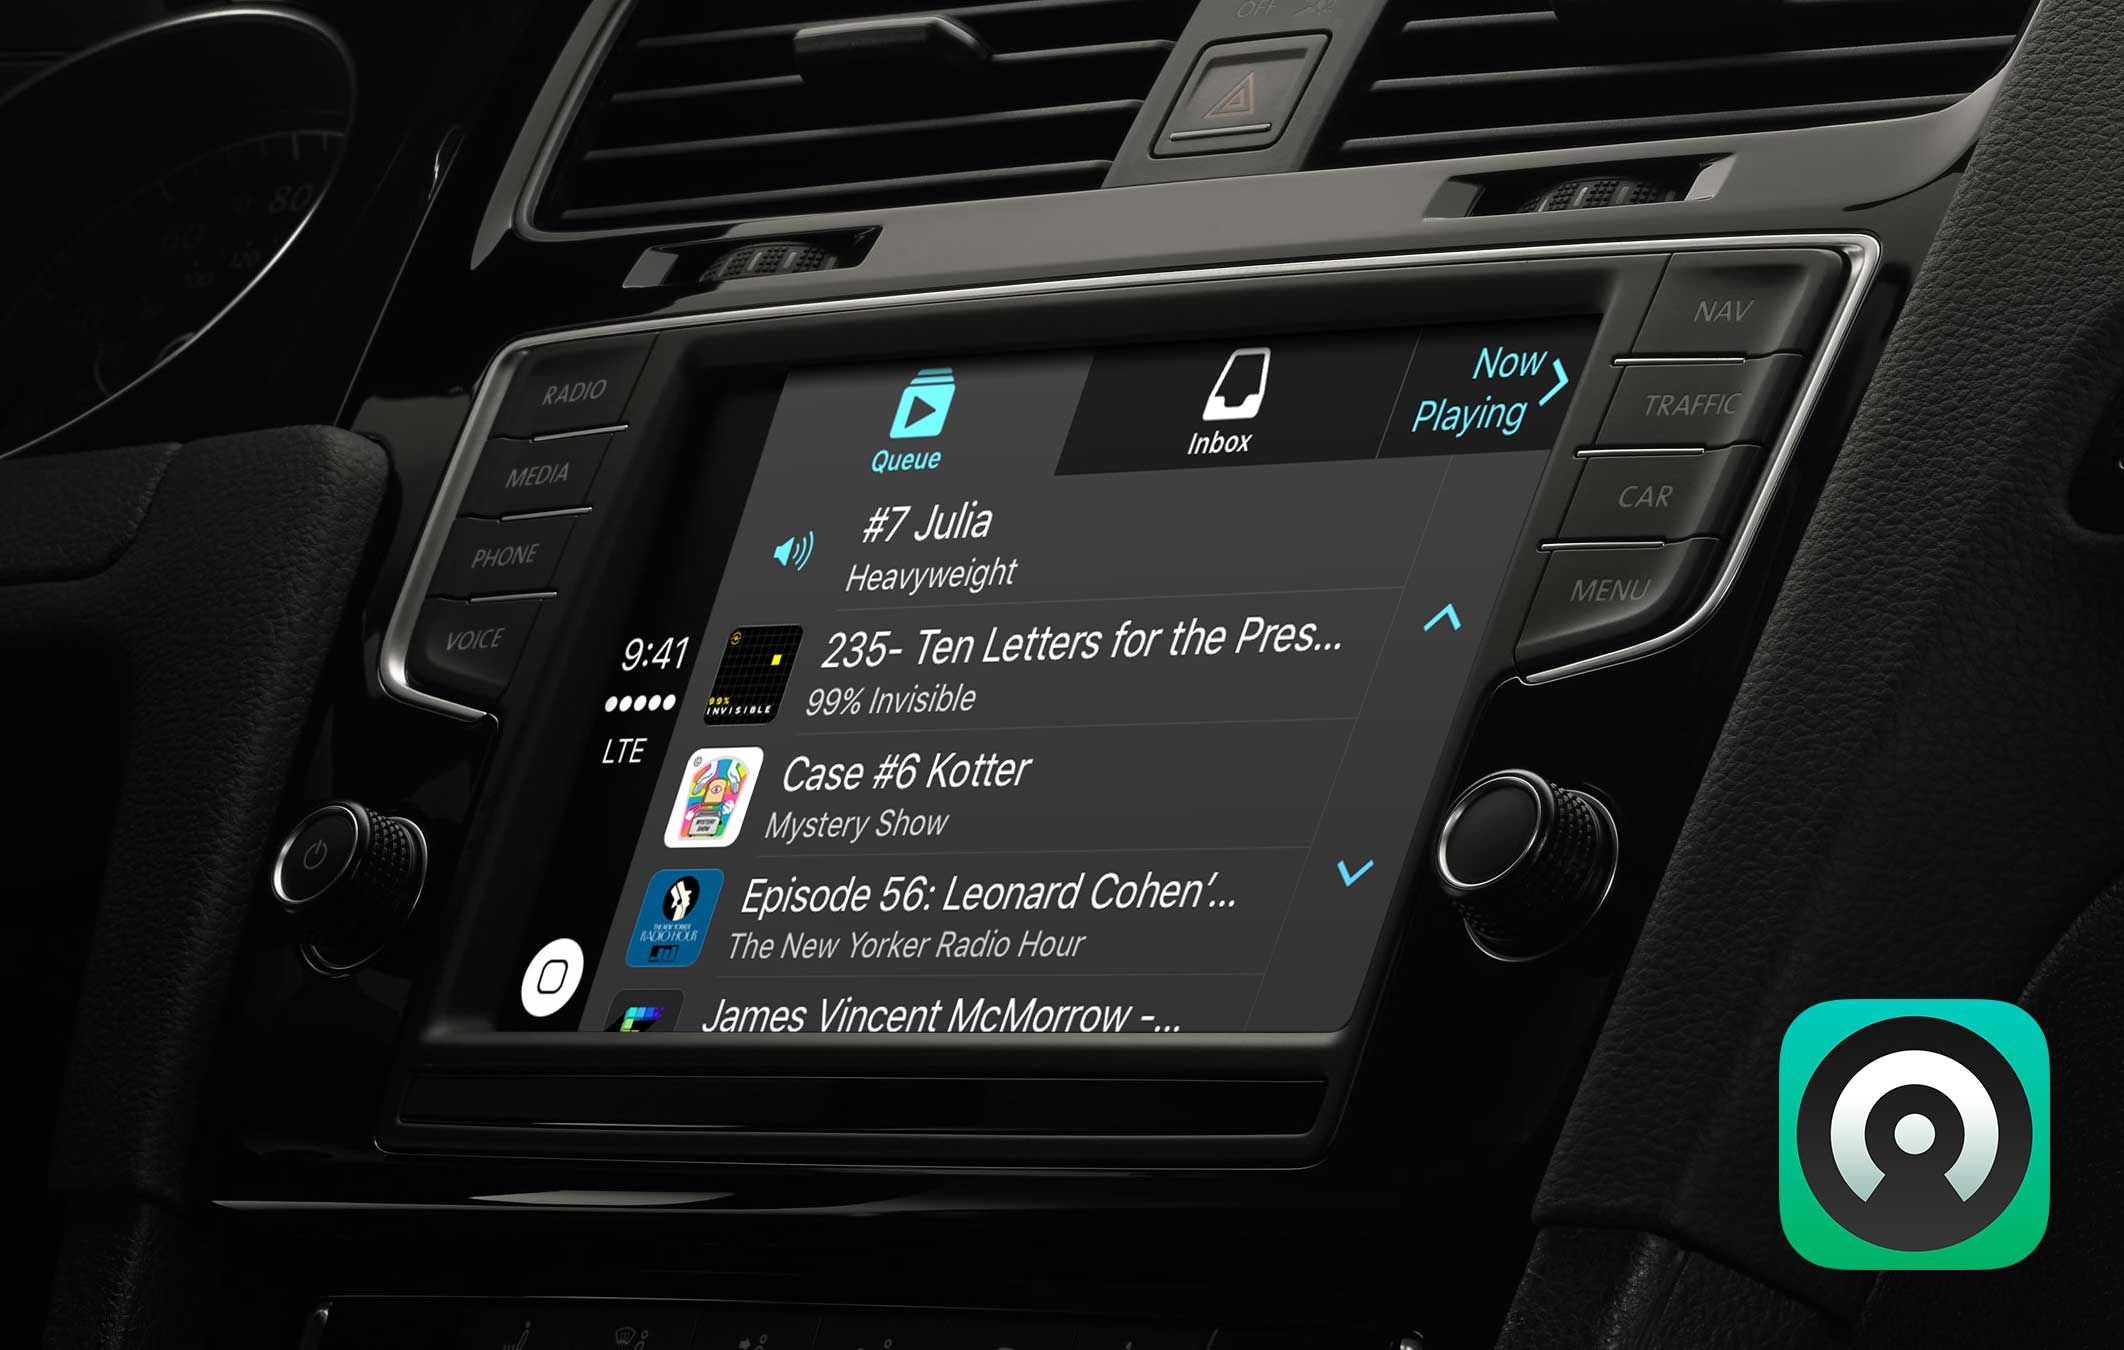 Preview of Castro's CarPlay interface in 2.2